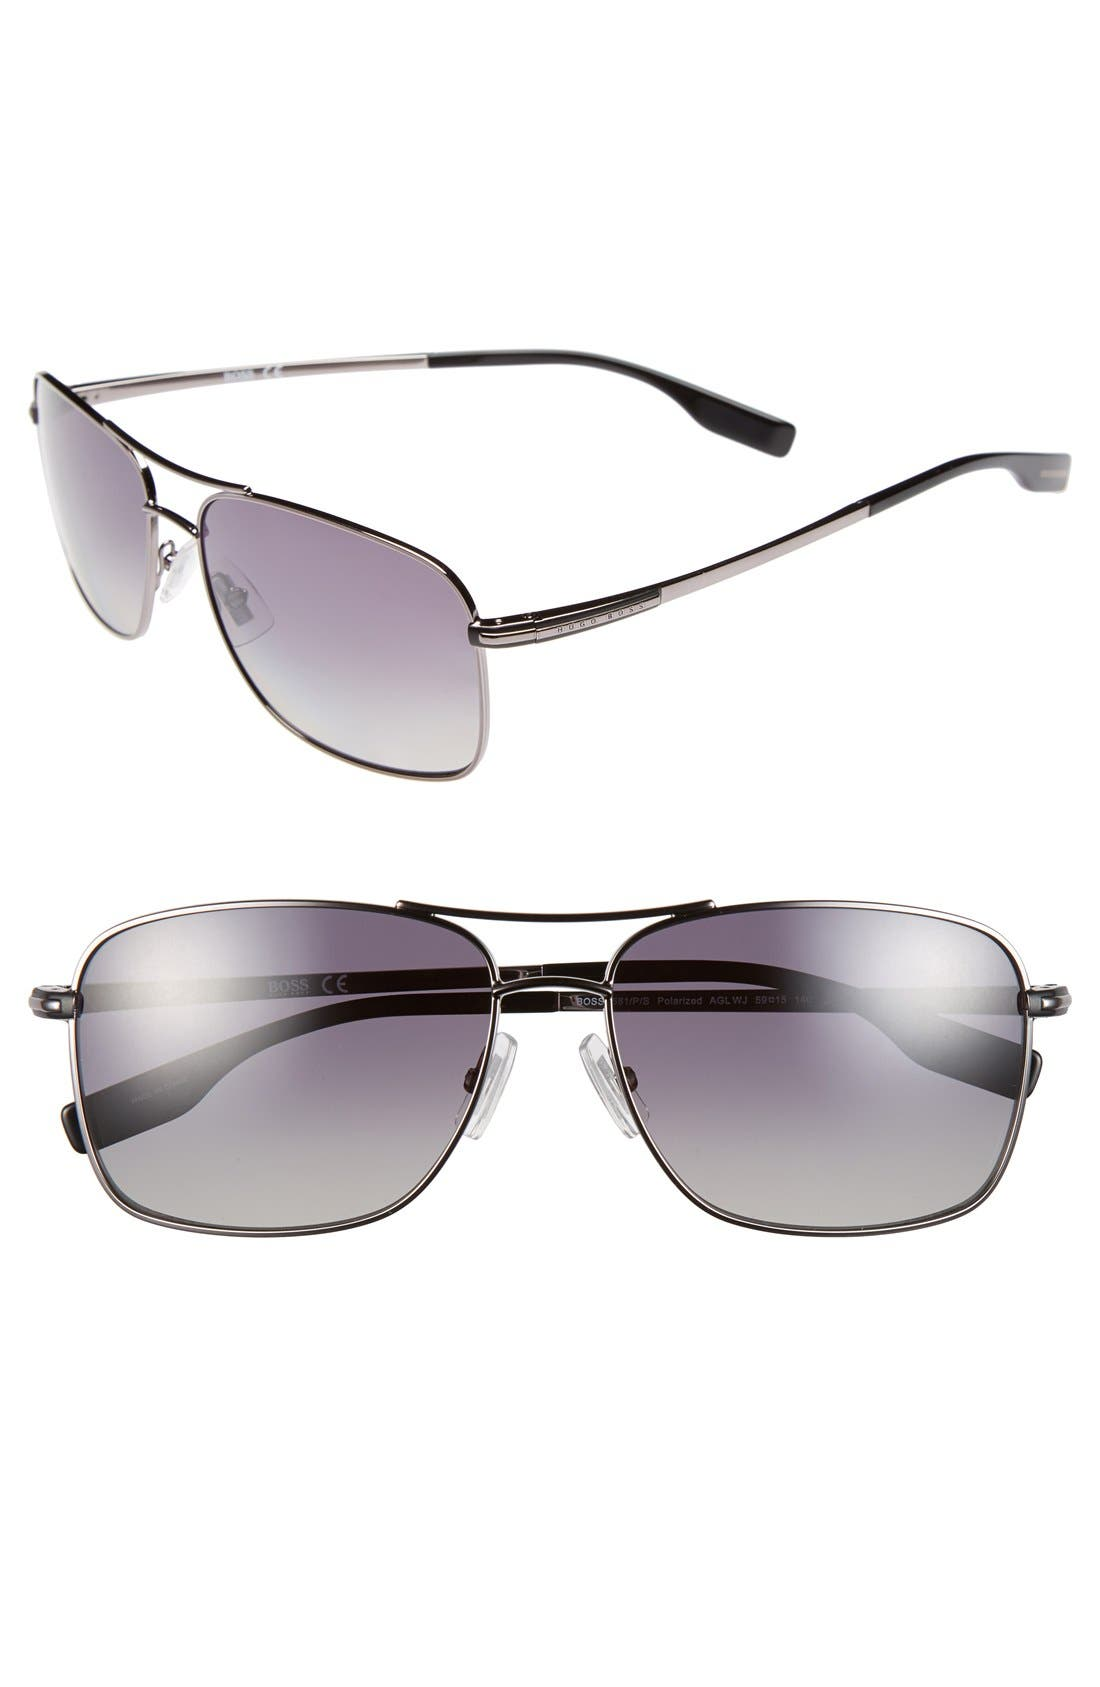 Alternate Image 1 Selected - BOSS 59mm Polarized Navigator Sunglasses